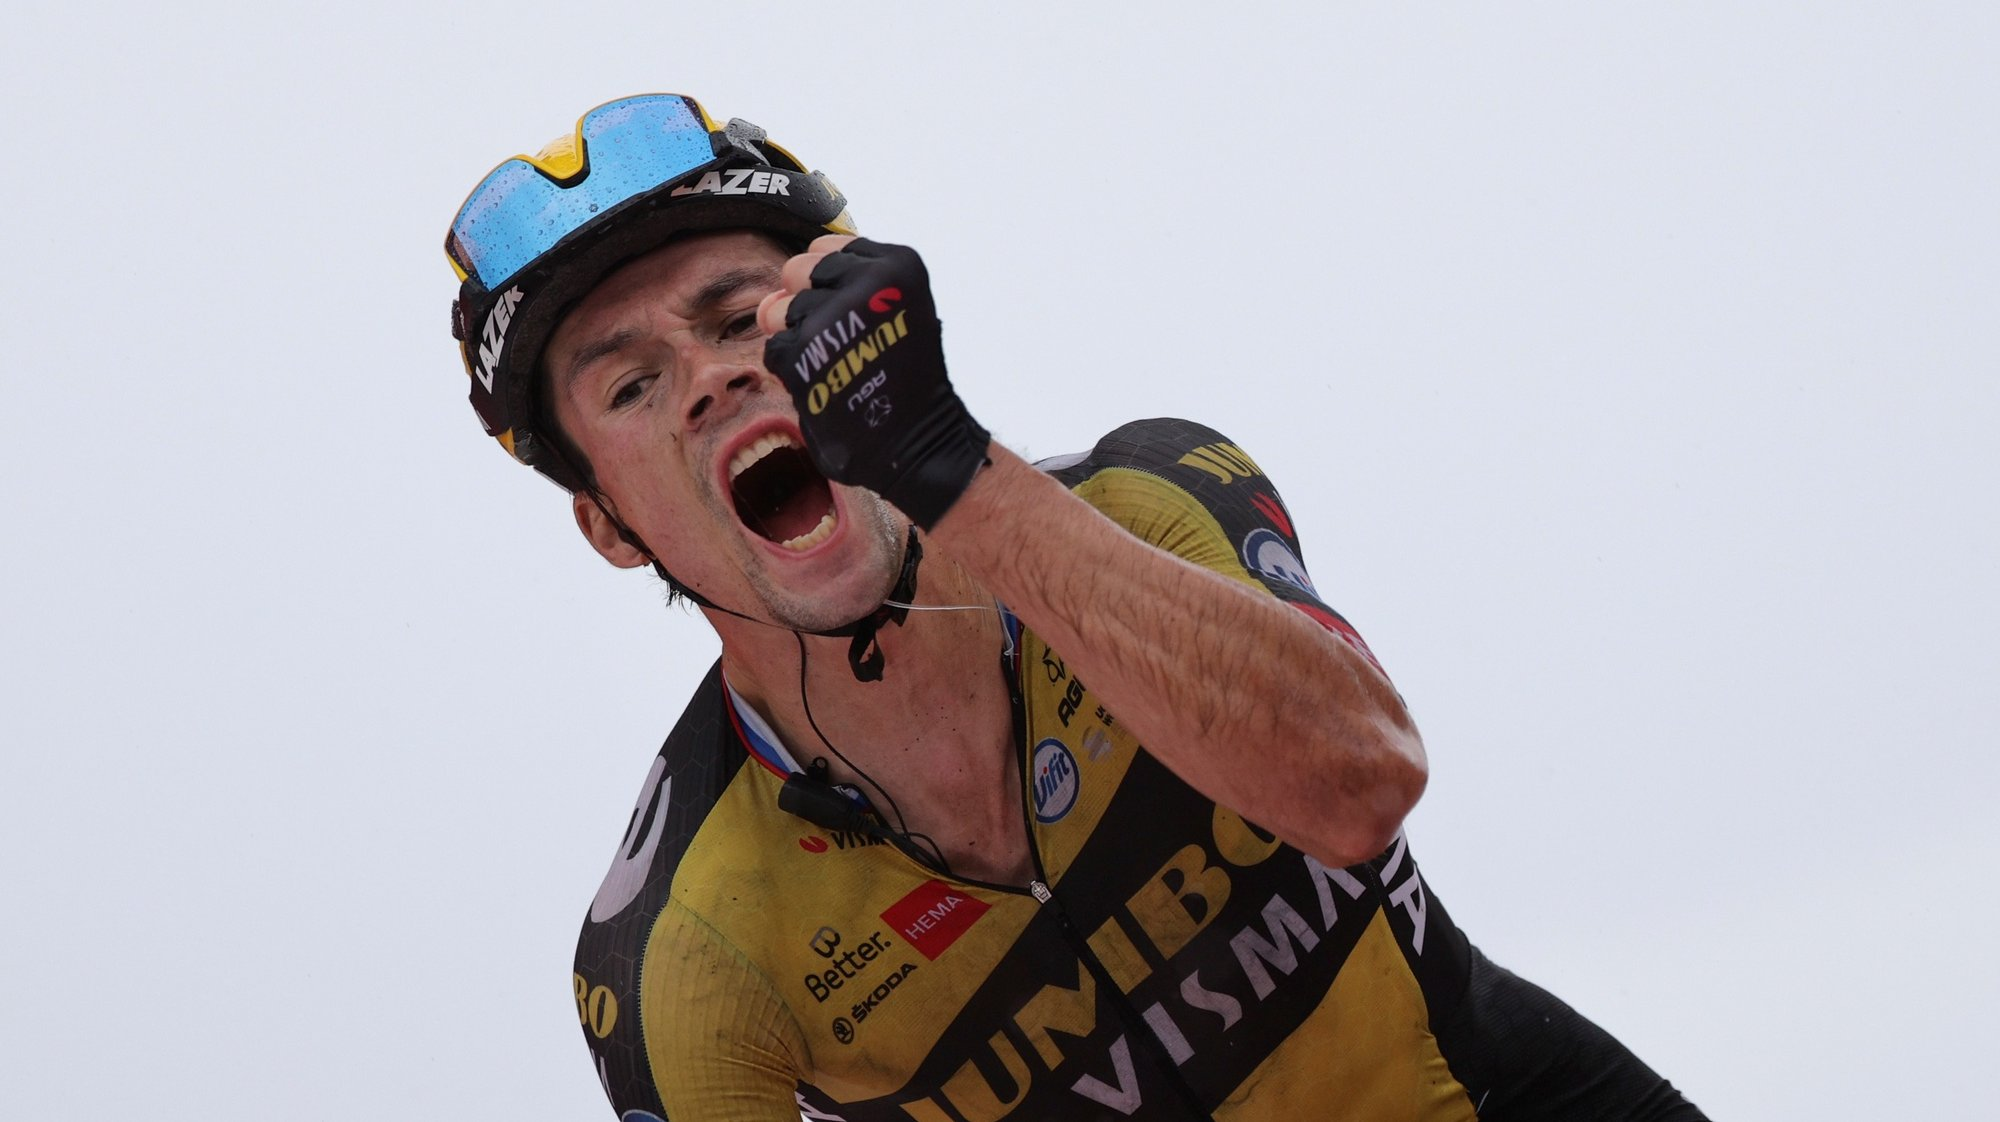 epa09440816 Slovenian rider Primoz Roglic of Team Jumbo-Visma celebrates after winning the 17th stage of the 2021 La Vuelta cycling tour over 185.8km between Unquera and Lagos de Covadonga, Spain, 01 September 2021.  EPA/Manu Bruque